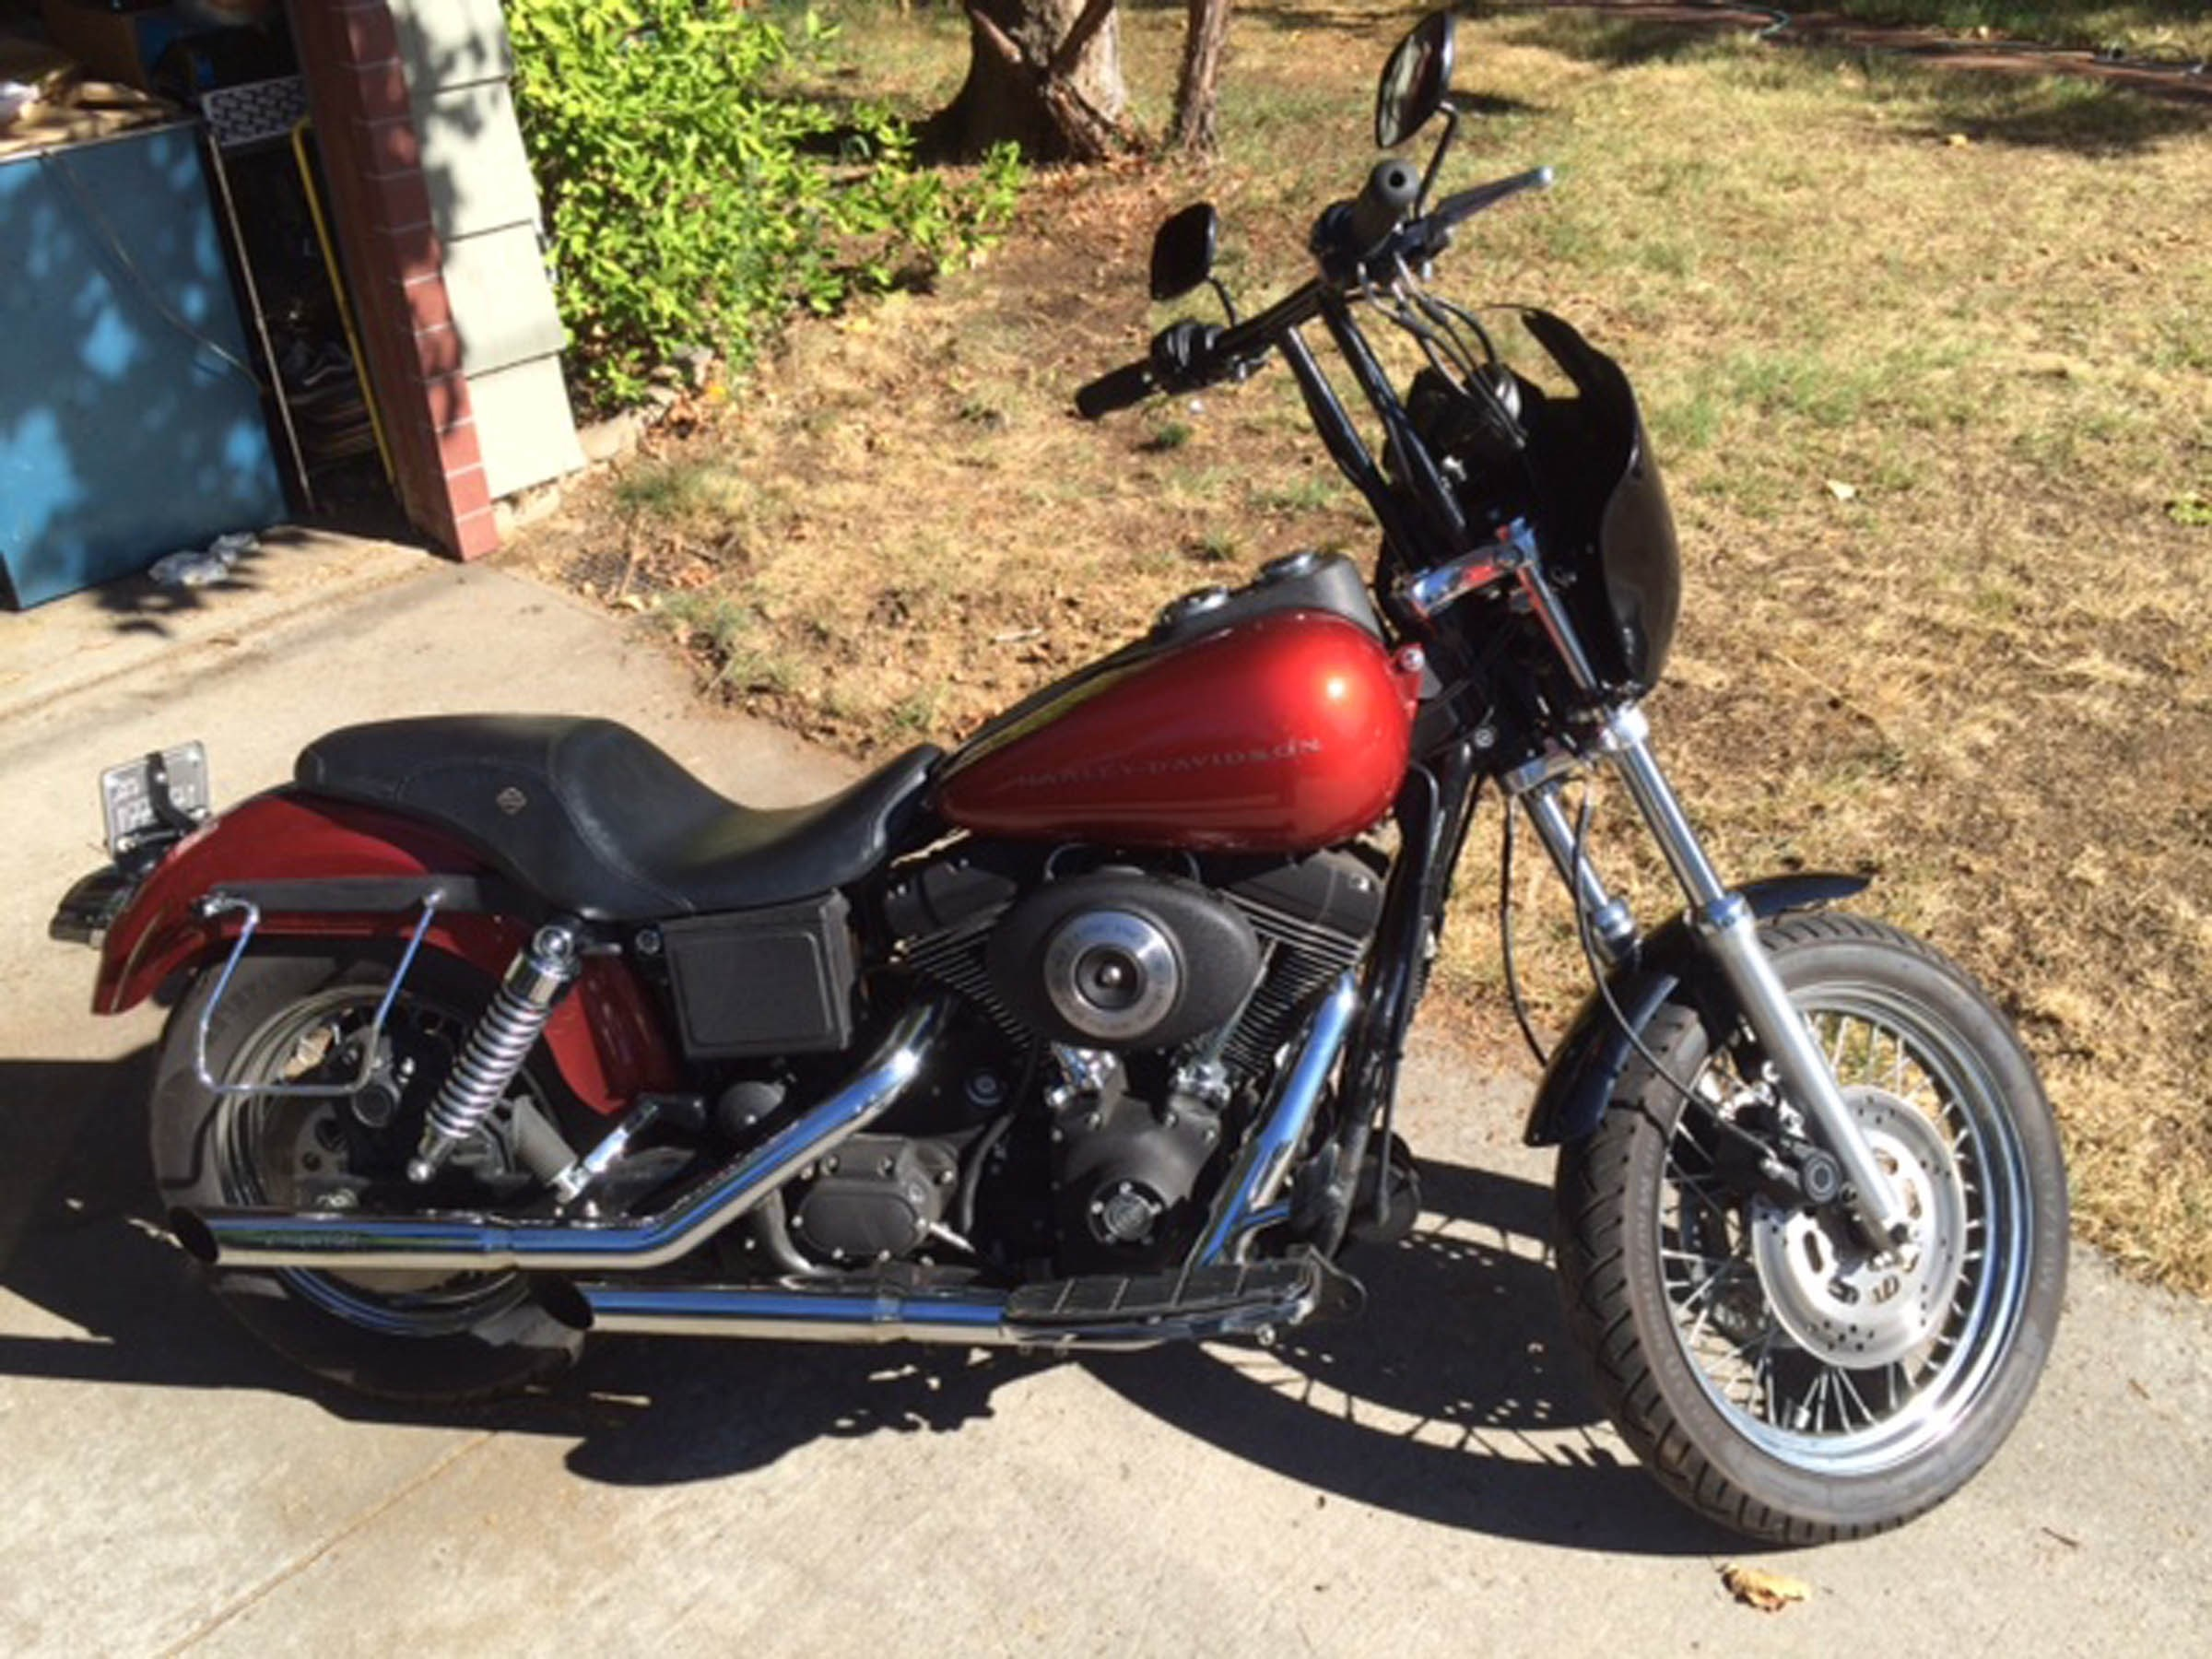 New Harley Davidson Dyna Motorcycles For Sale For Sale California >> 1999 Harley-Davidson® FXDX Dyna® Super Glide® Sport (Red Earth), Auburn , California (490109 ...